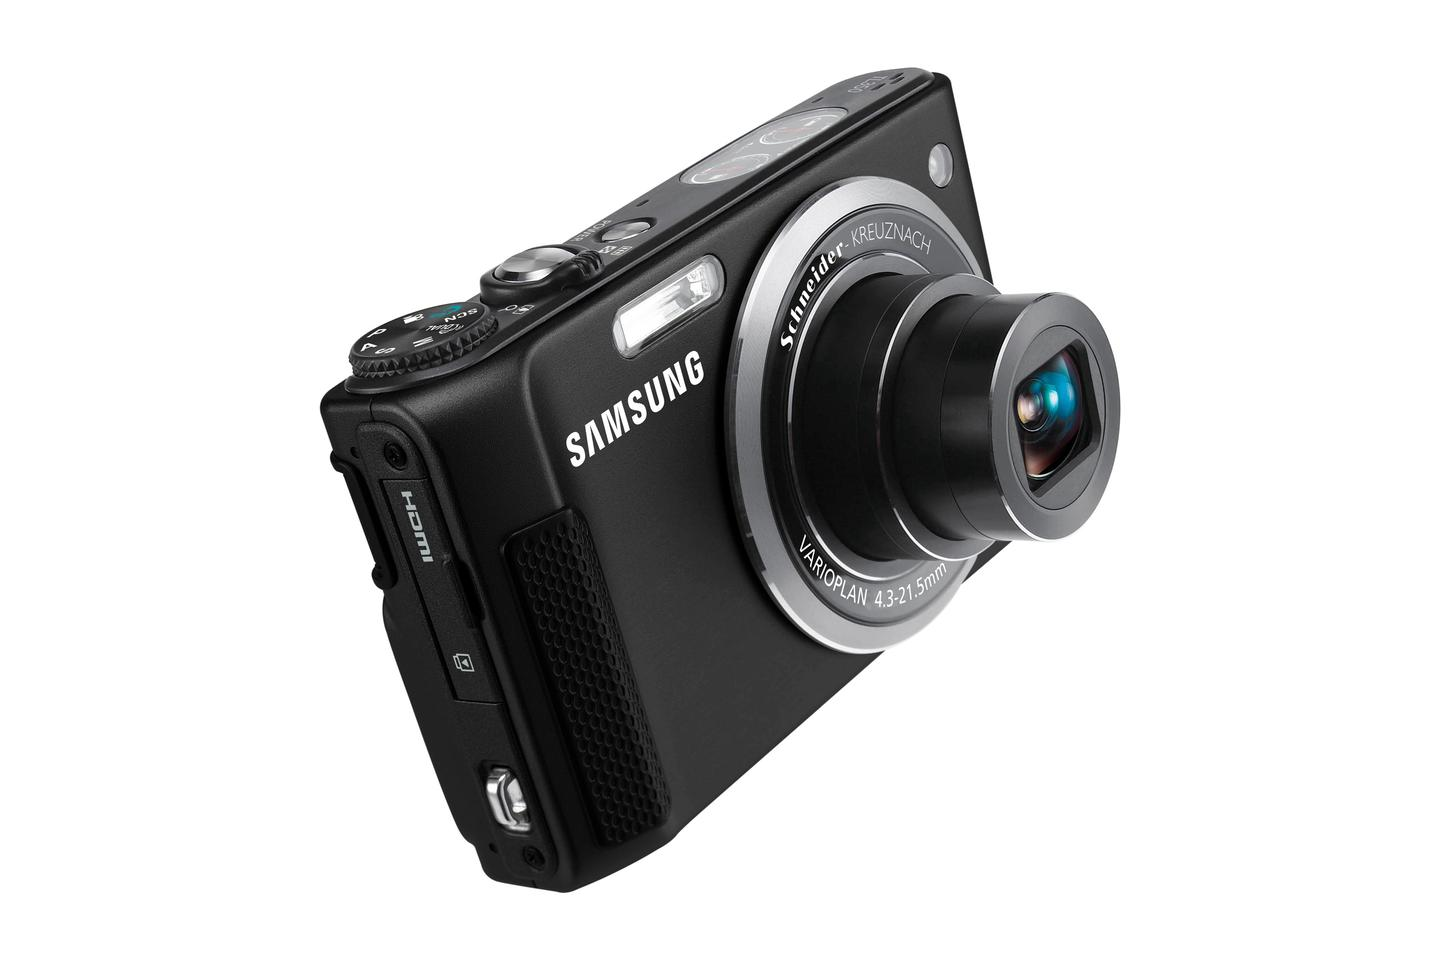 Samsung's TL350 features a 10.2MP CMOS sensor, a 24mm ultra wide angle Schneider KREUZNACH lens with five times optical zoom